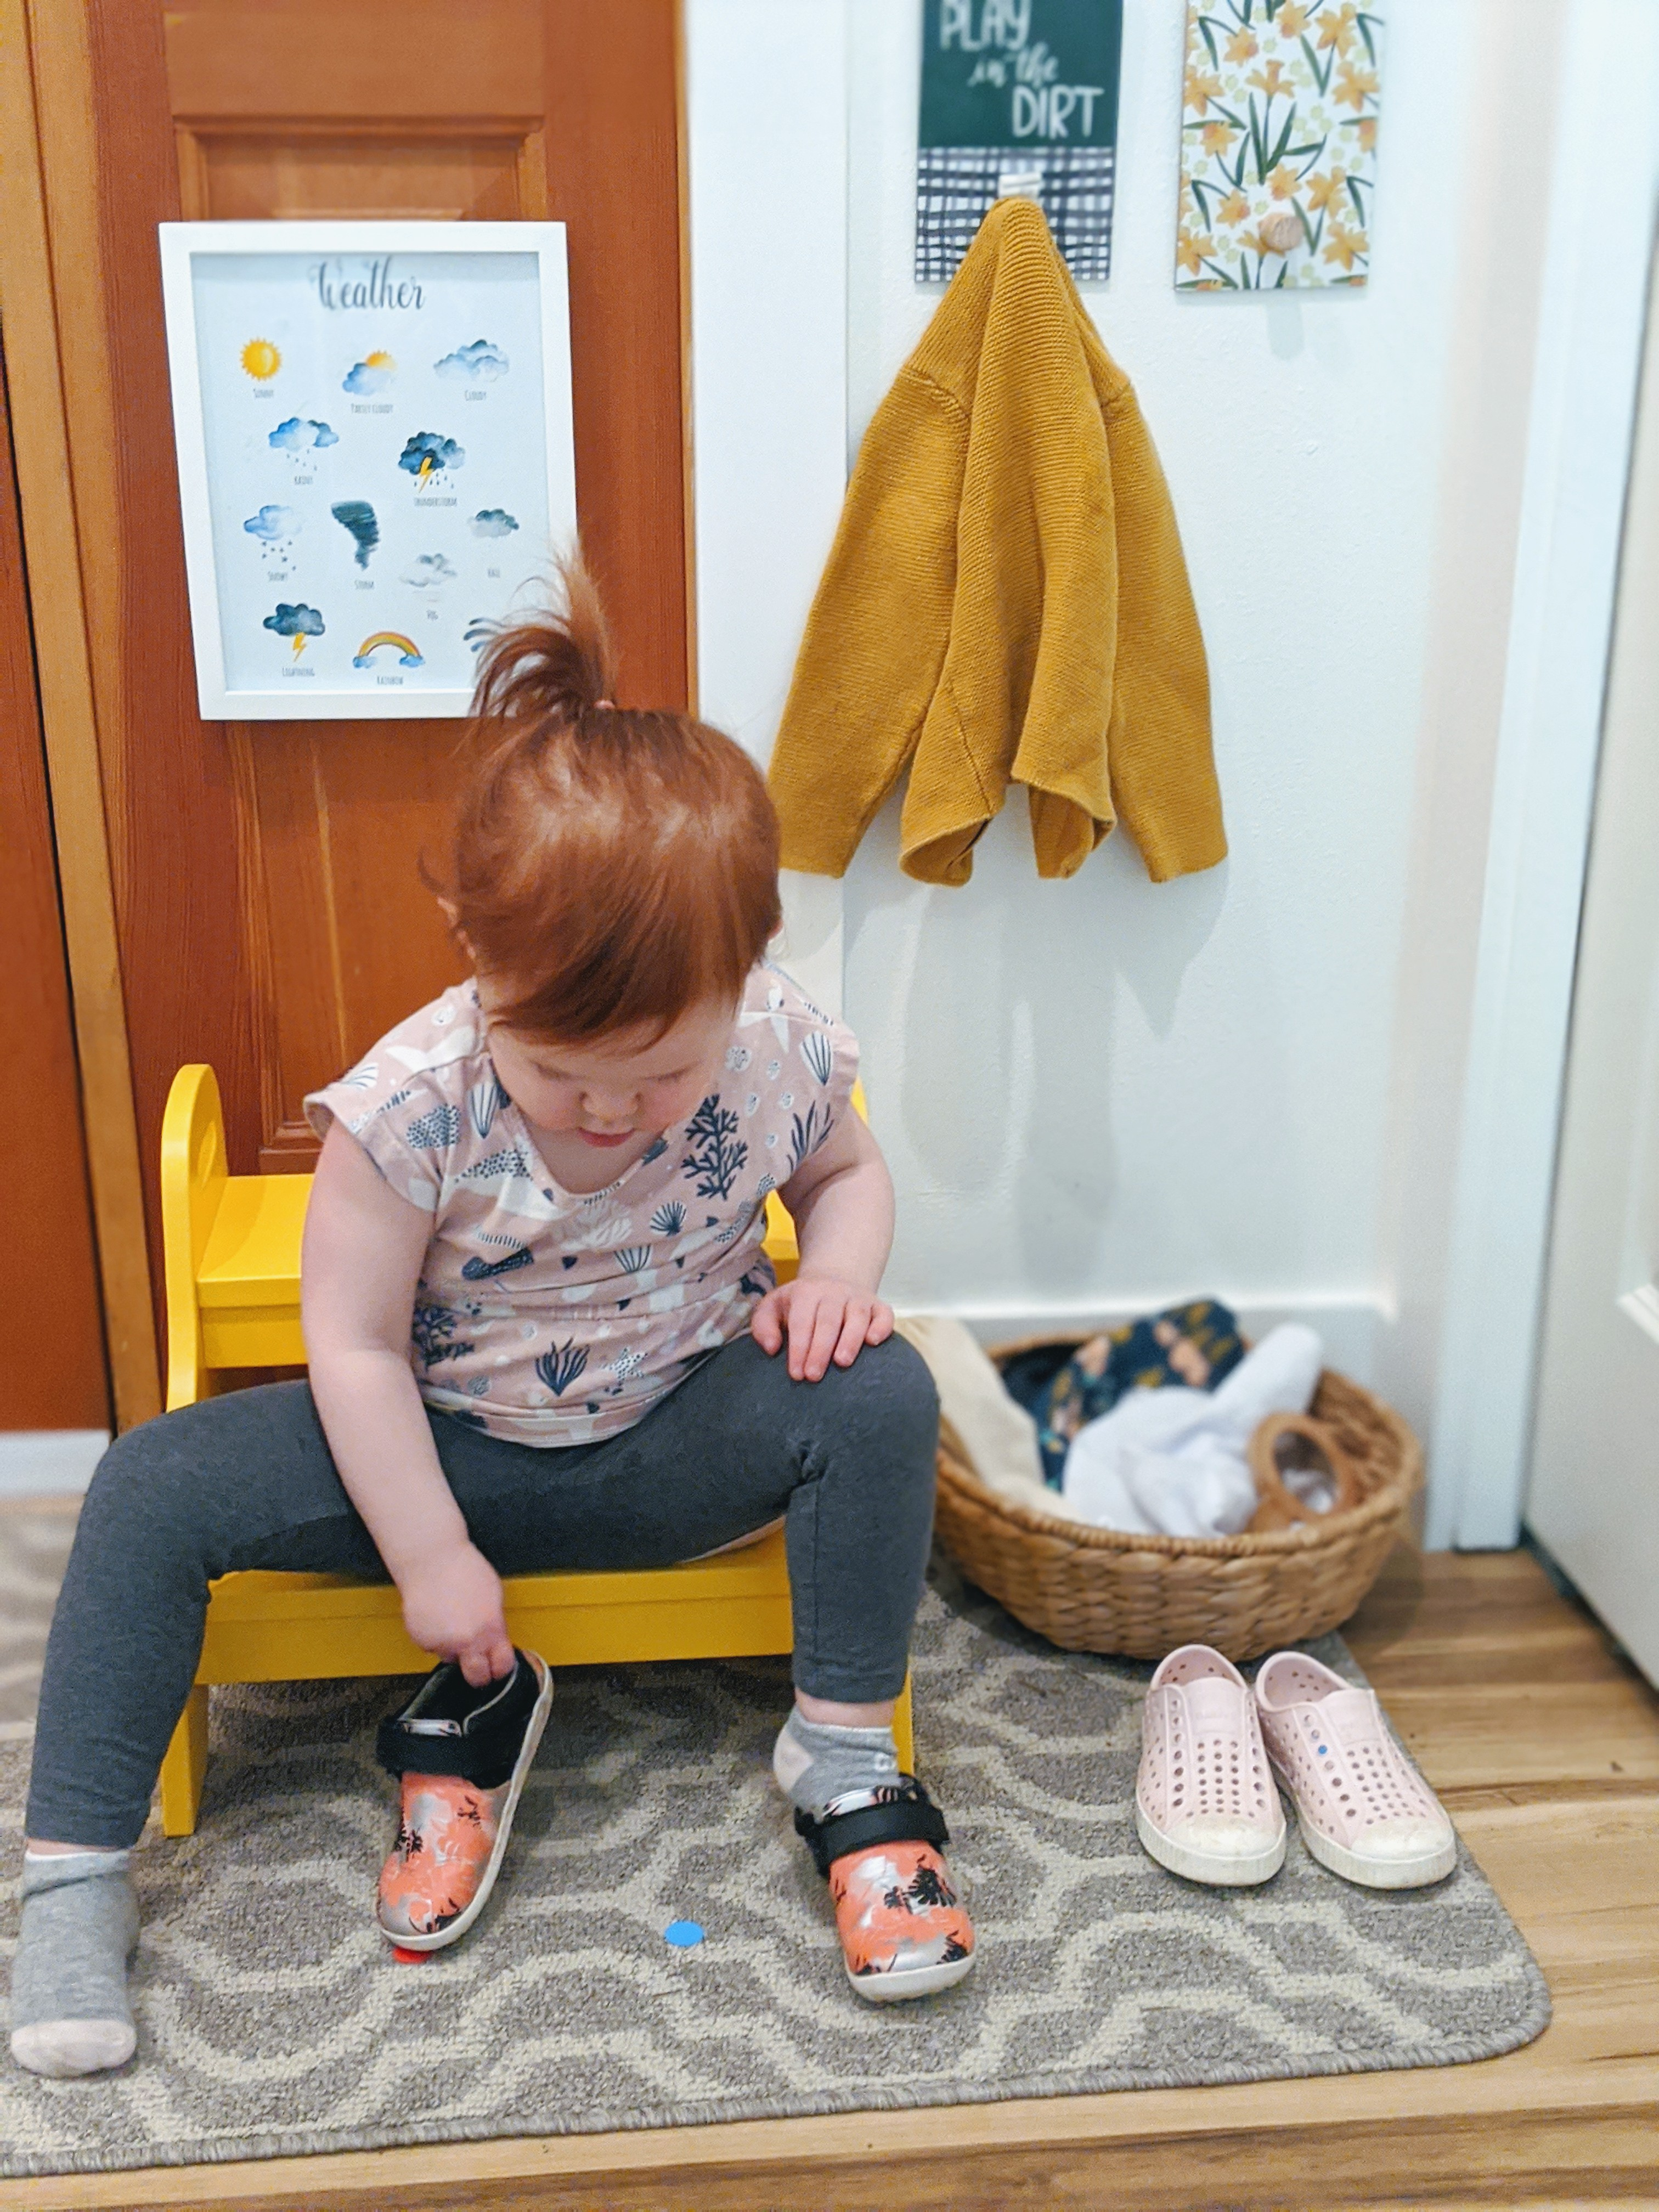 Toddler sitting on a stool putting on their shoes